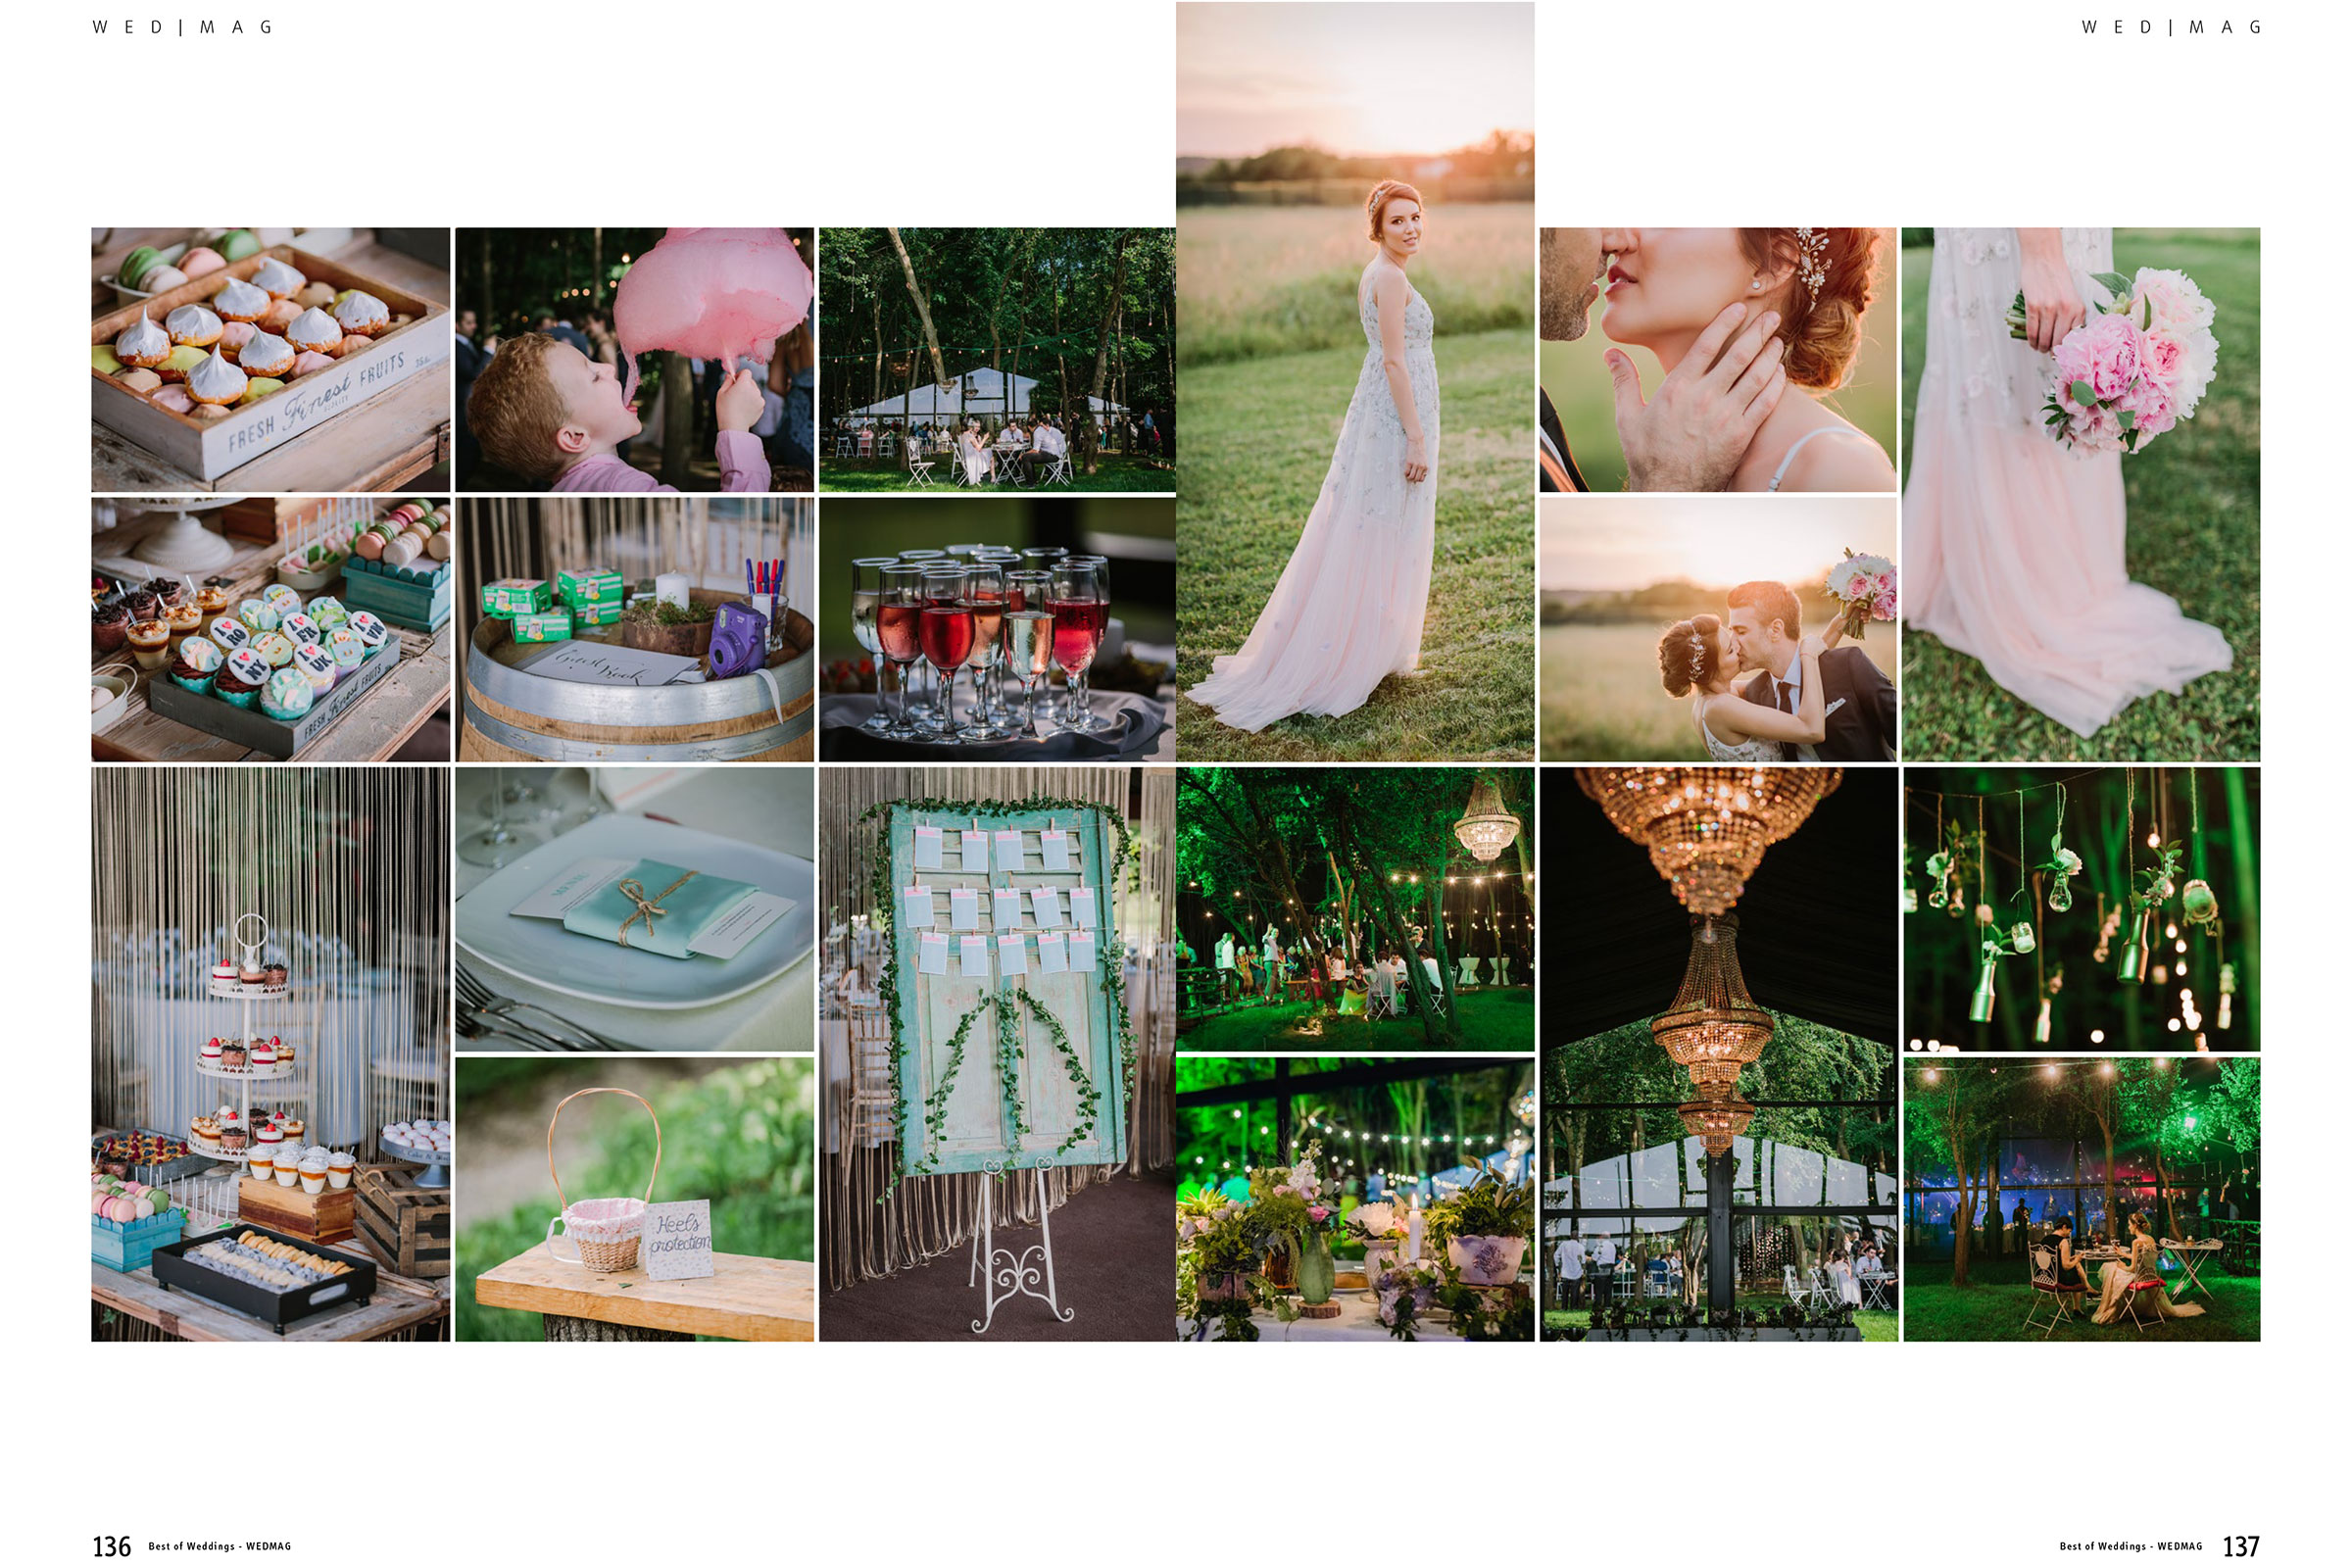 cromatica in best of weddings 2018 10